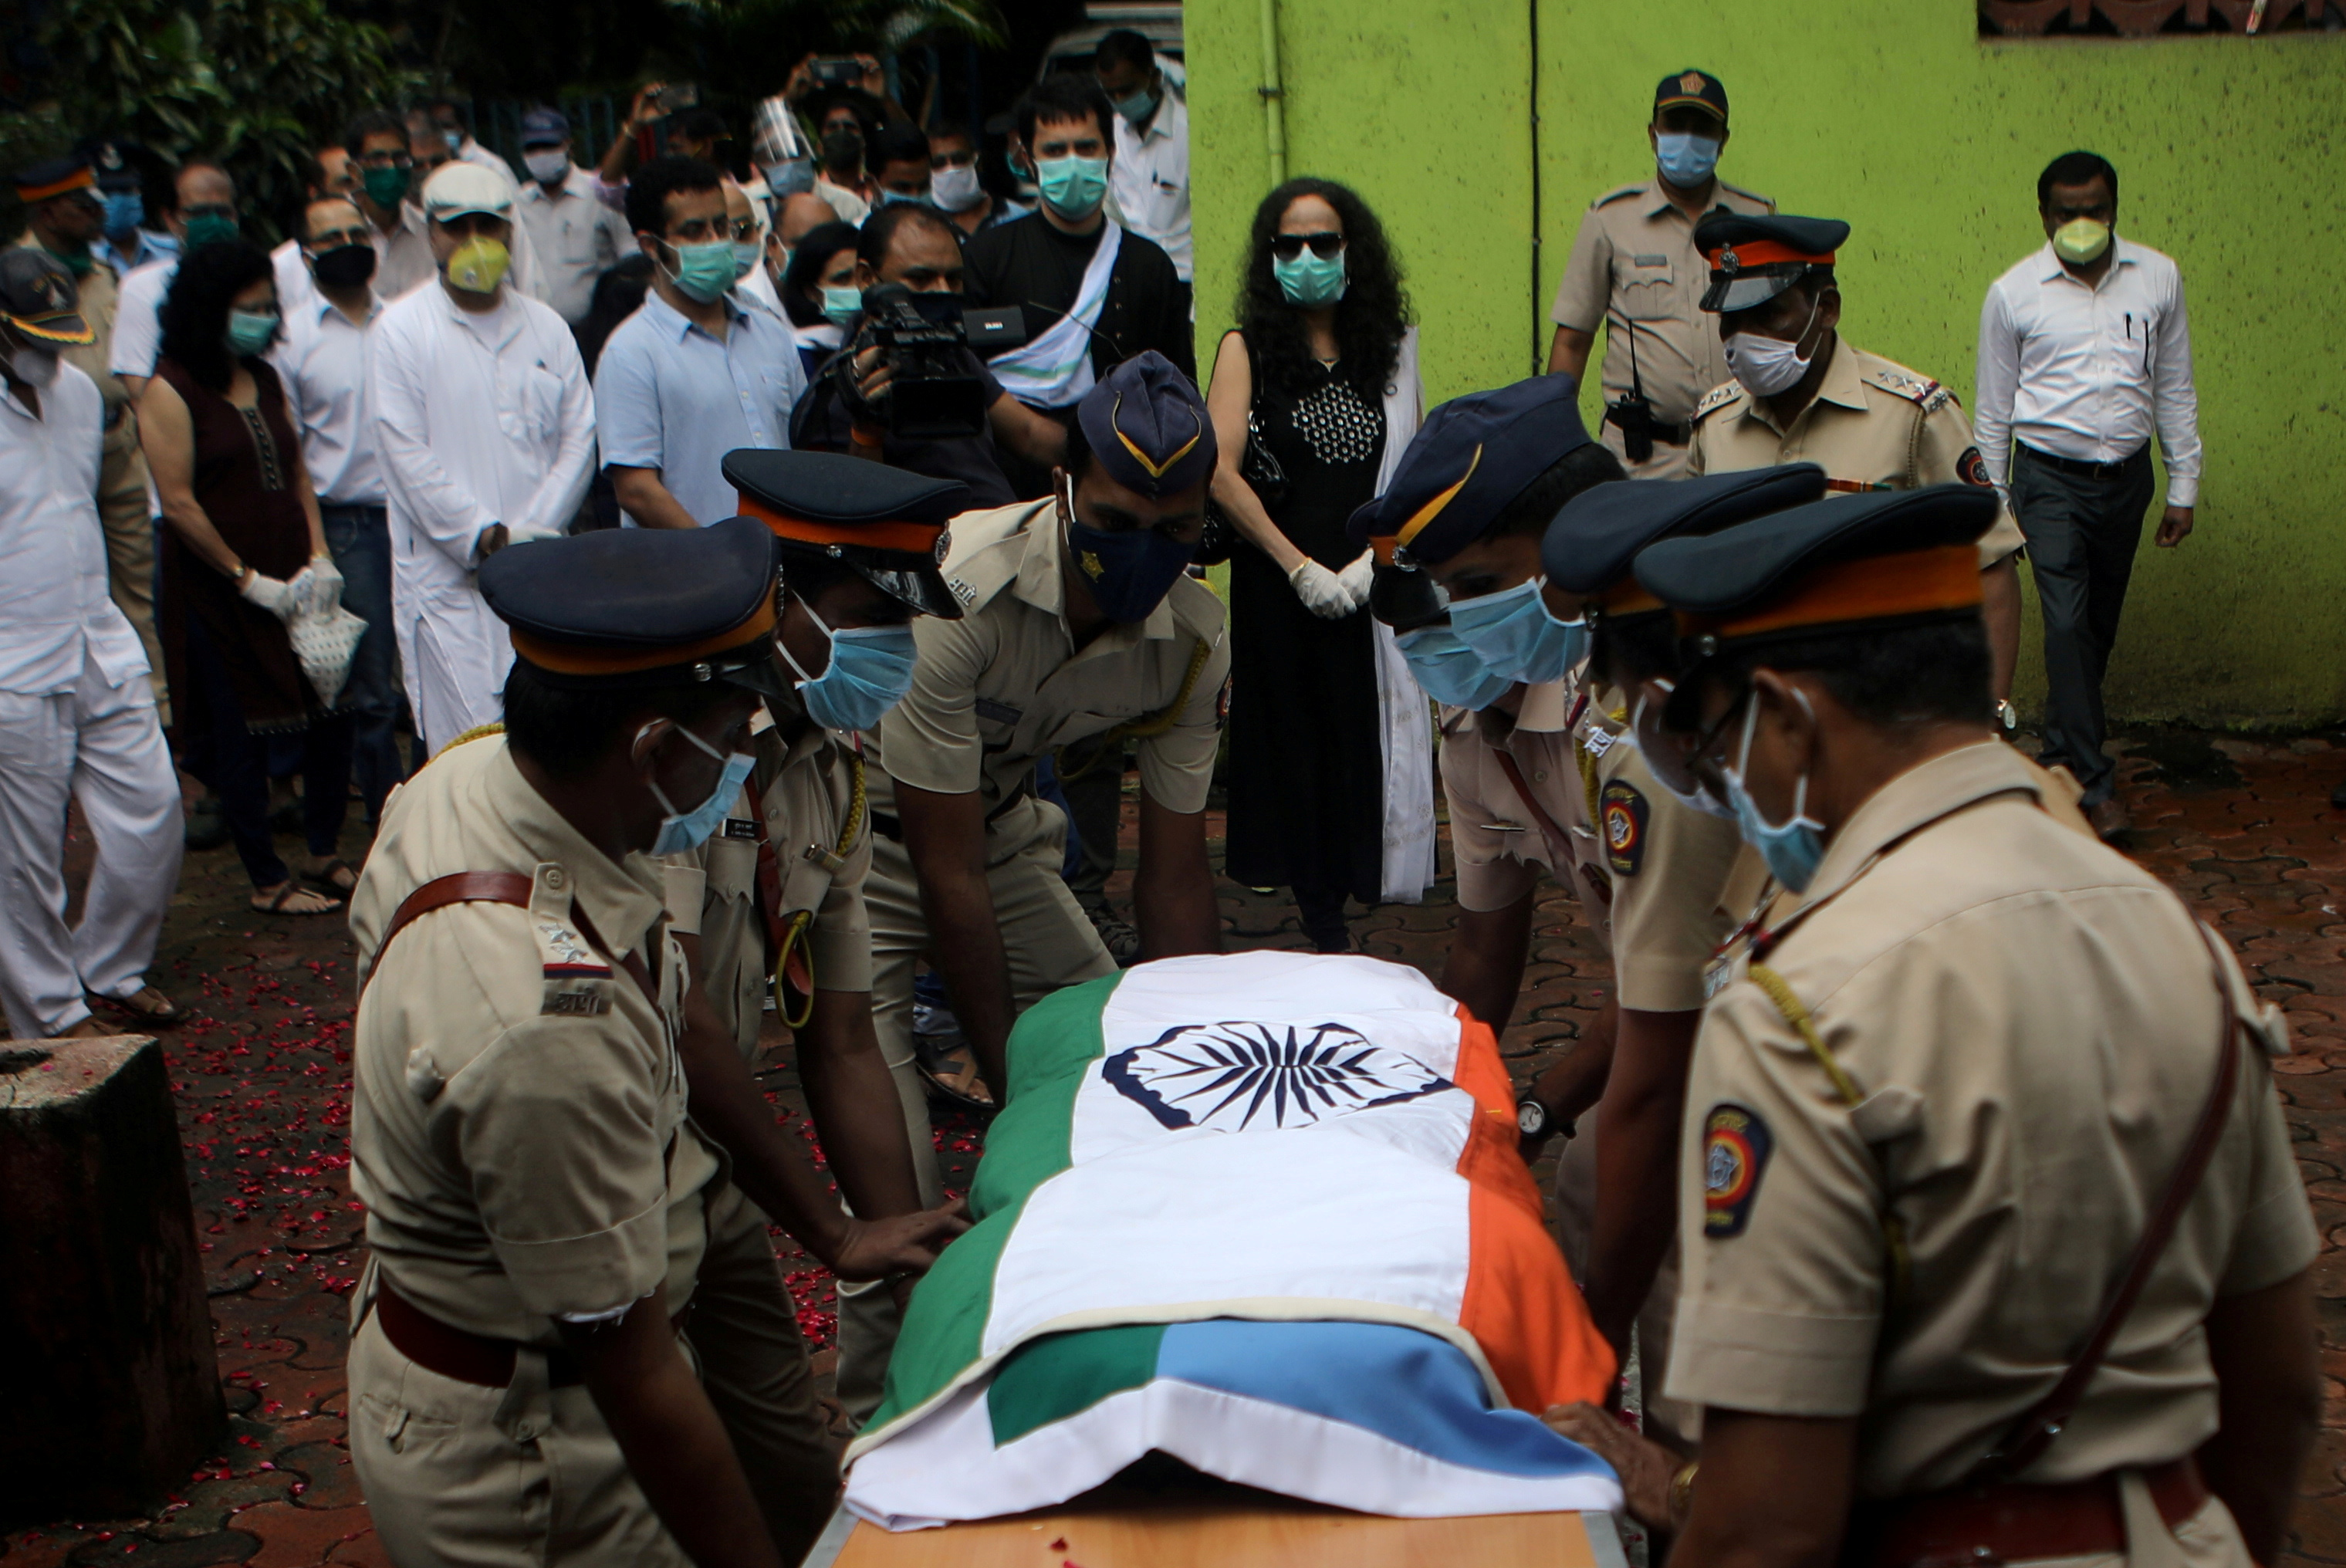 Police personnel carry the coffin of deceased Air India pilot Deepak Sathe as family members look on during his funeral in Mumbai, India, August 11, 2020. REUTERS/Francis Mascarenhas/File Photo